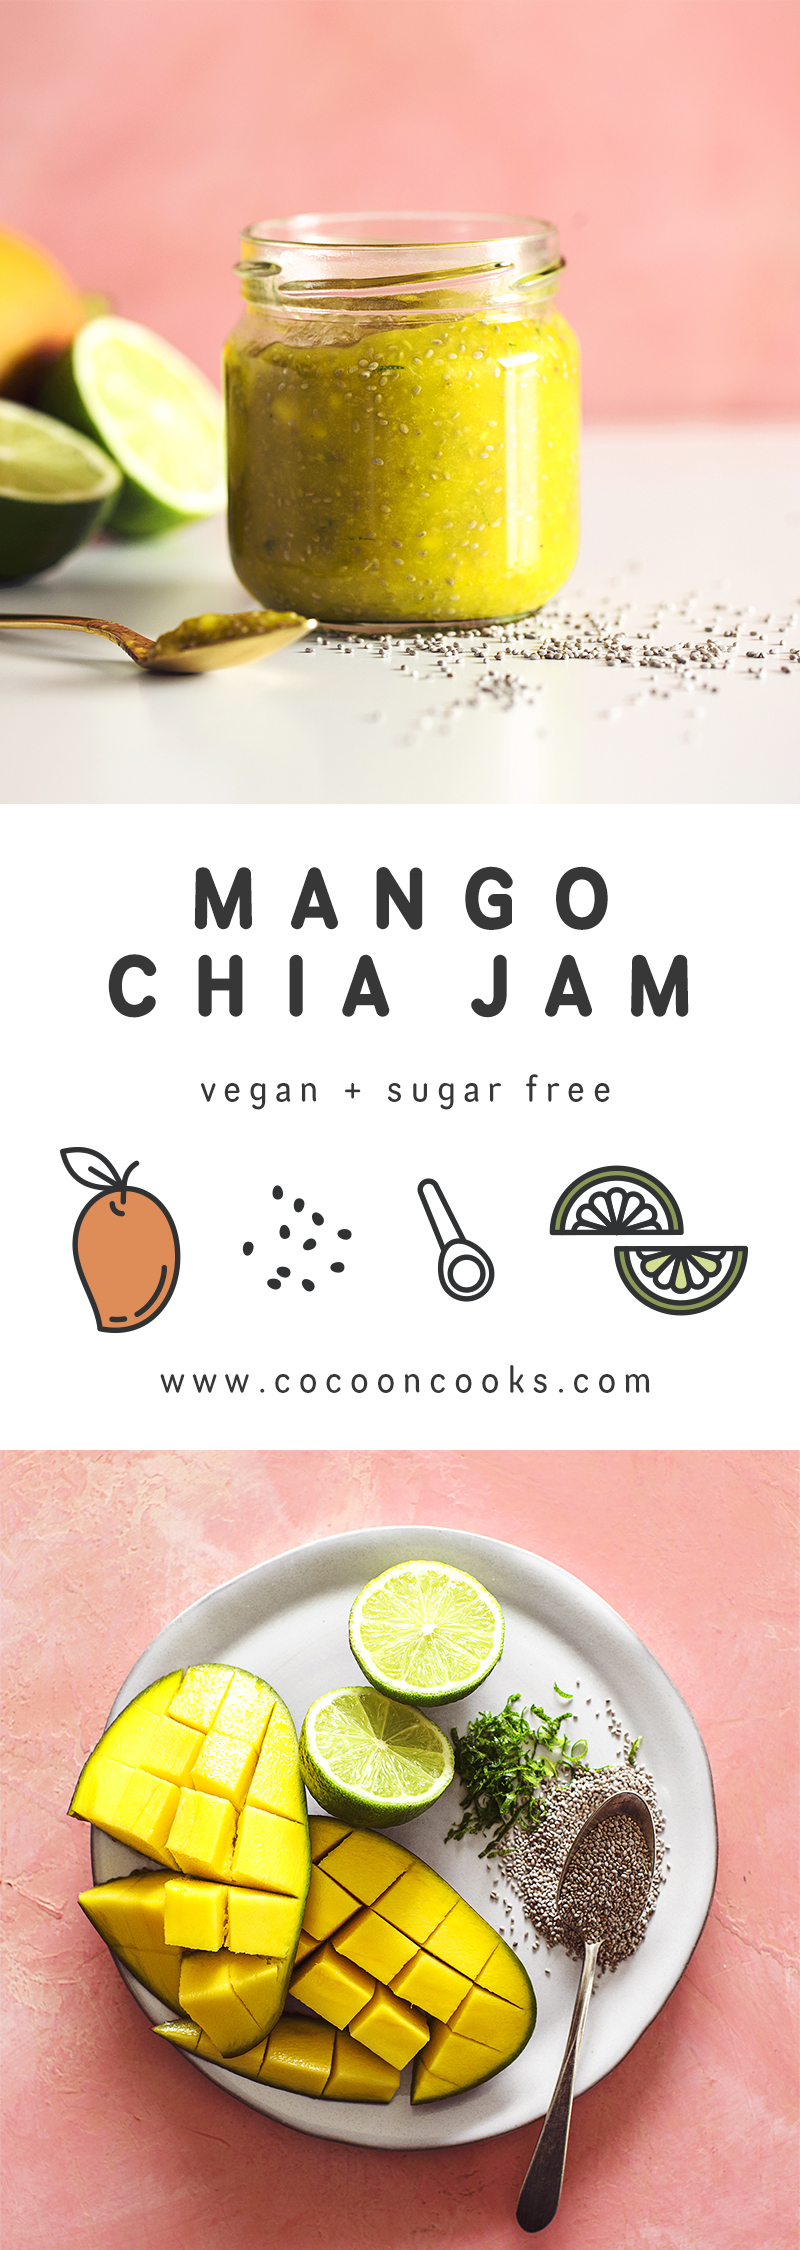 Quick and easy recipe for a Mango Chia Jam, completely plant-based and sugar free.